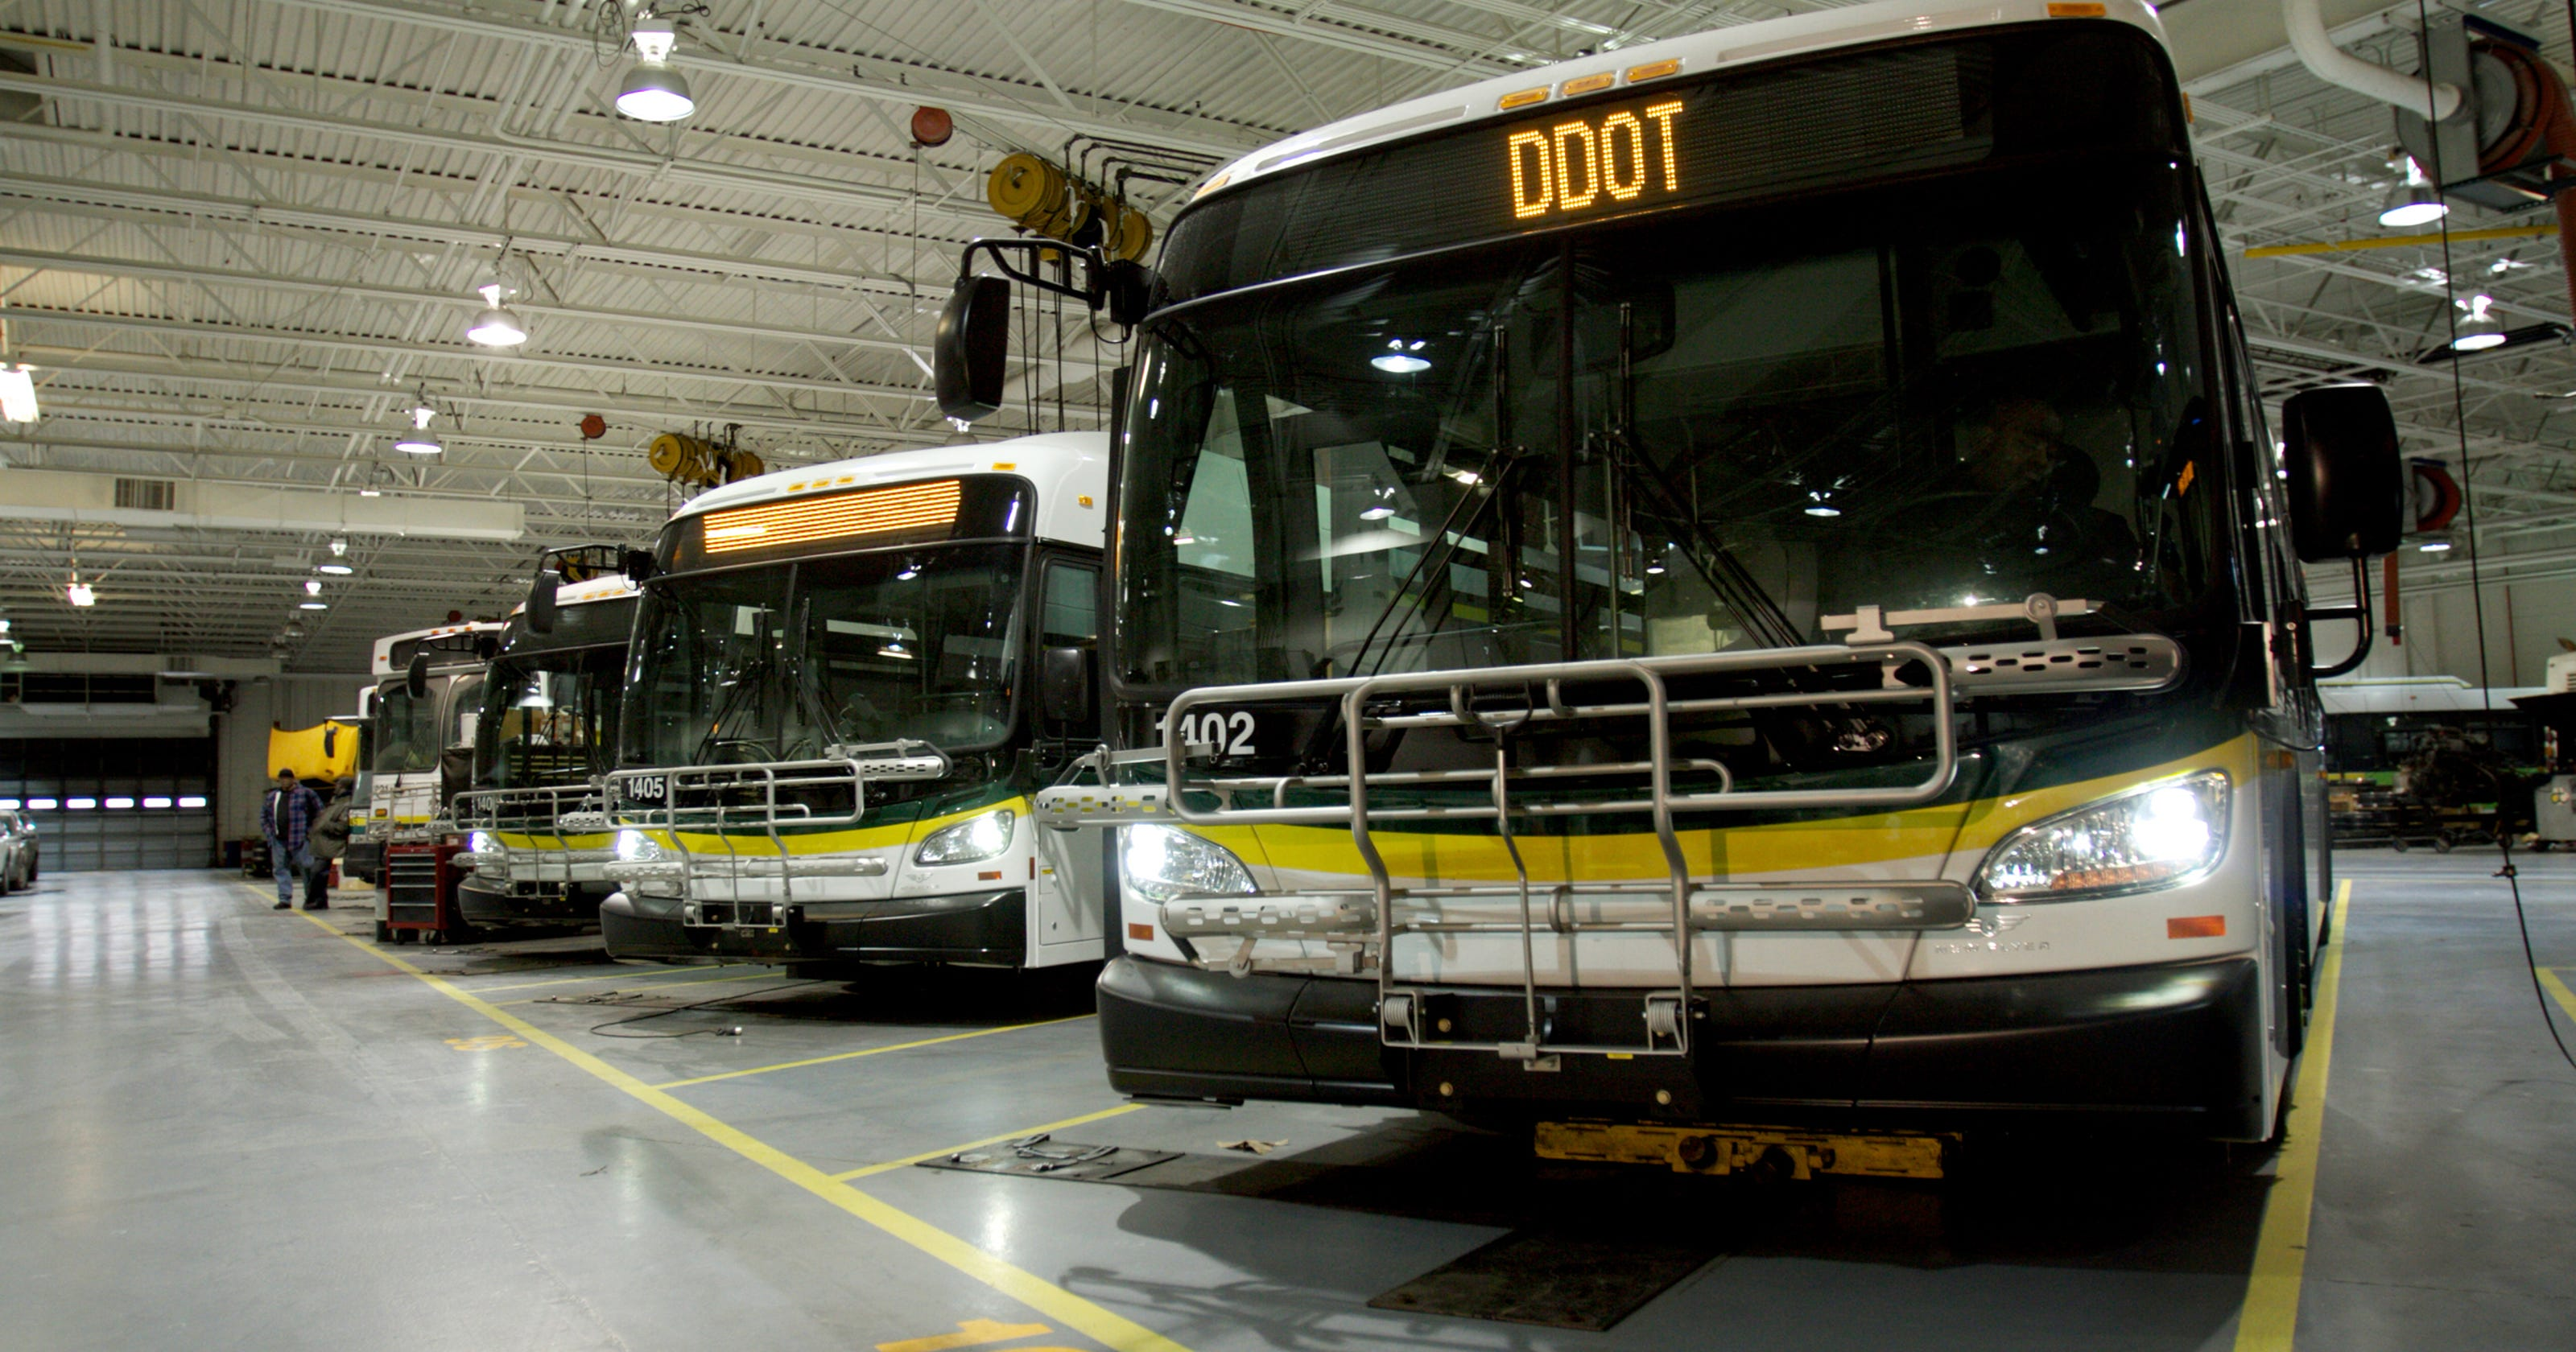 ddot to add 24-hour bus service on key routes